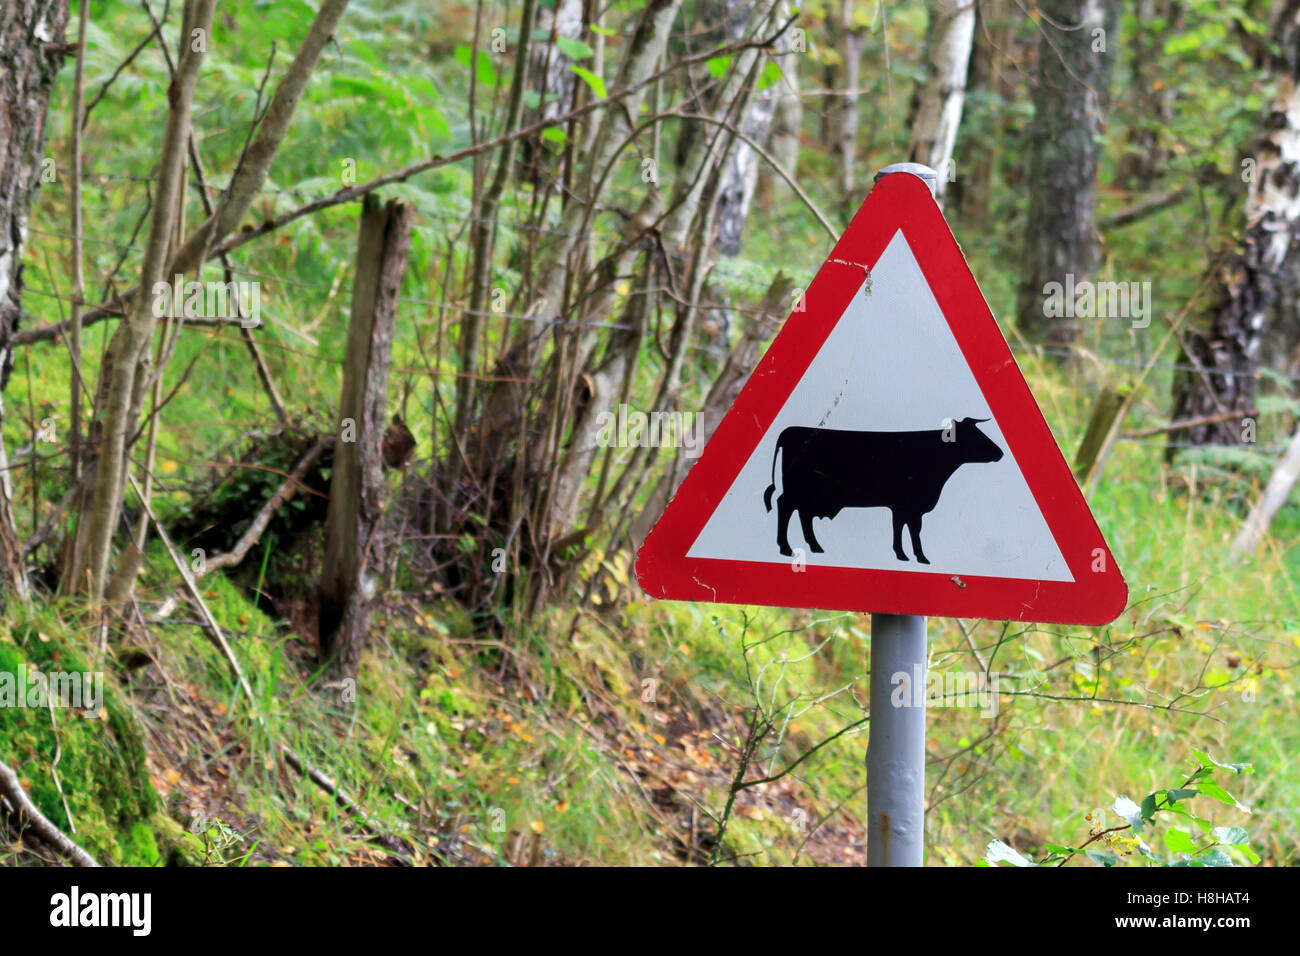 Triangular red and white road sign advising Beware of Cattle on the road - Stock Image